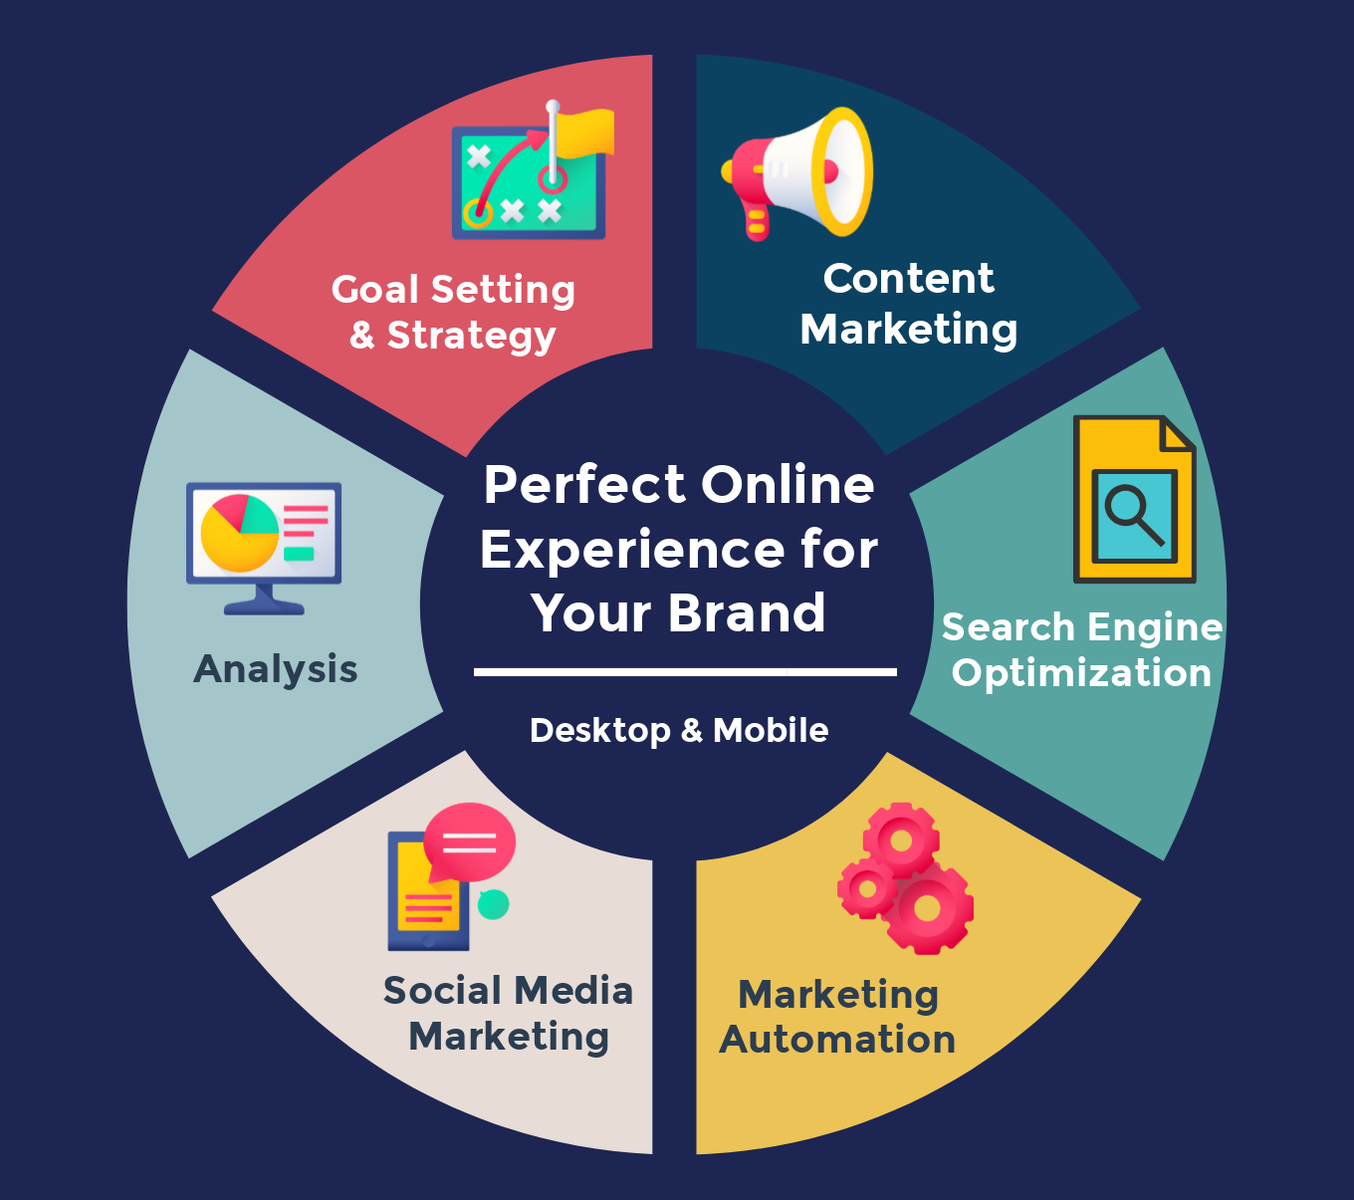 Perfect online experience for women business owners